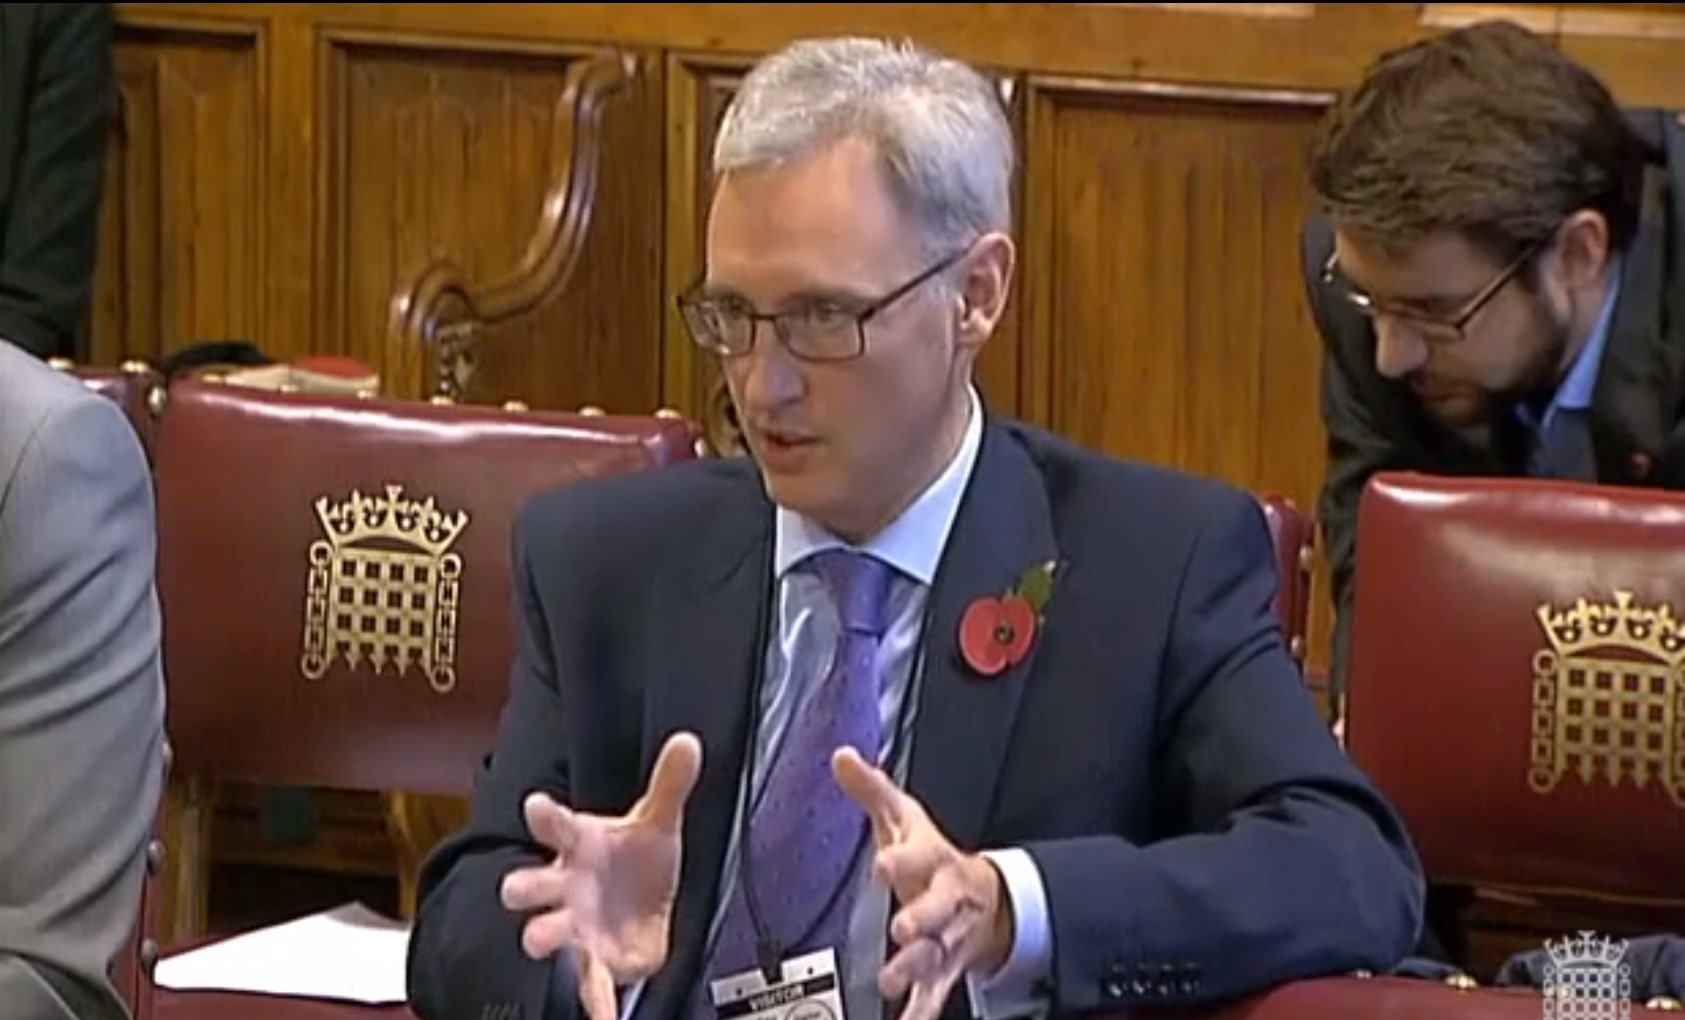 Gavin Parker House Of Lords 2